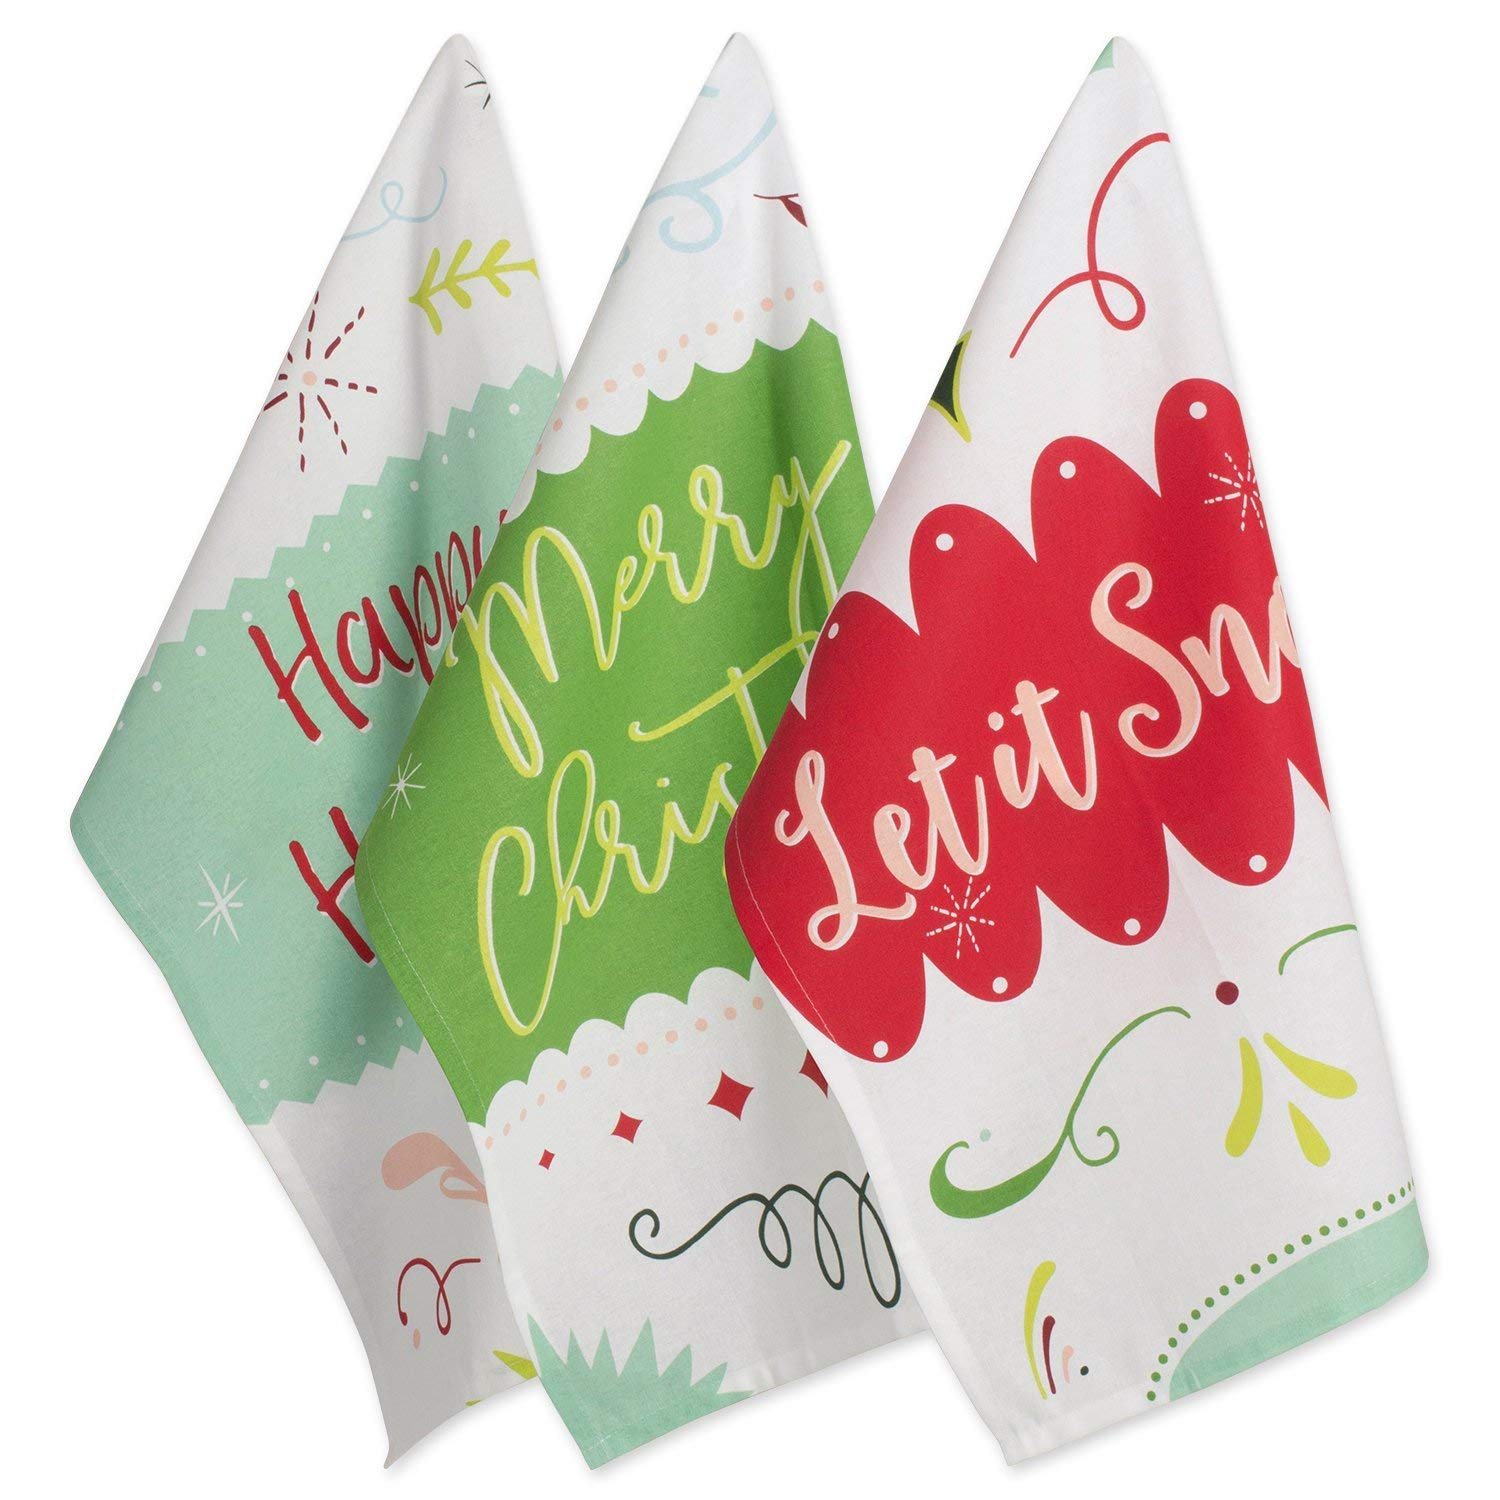 DII 100  Cotton 18x28 Christmas Holiday Dish Towels Set of 3-Winter Wishes